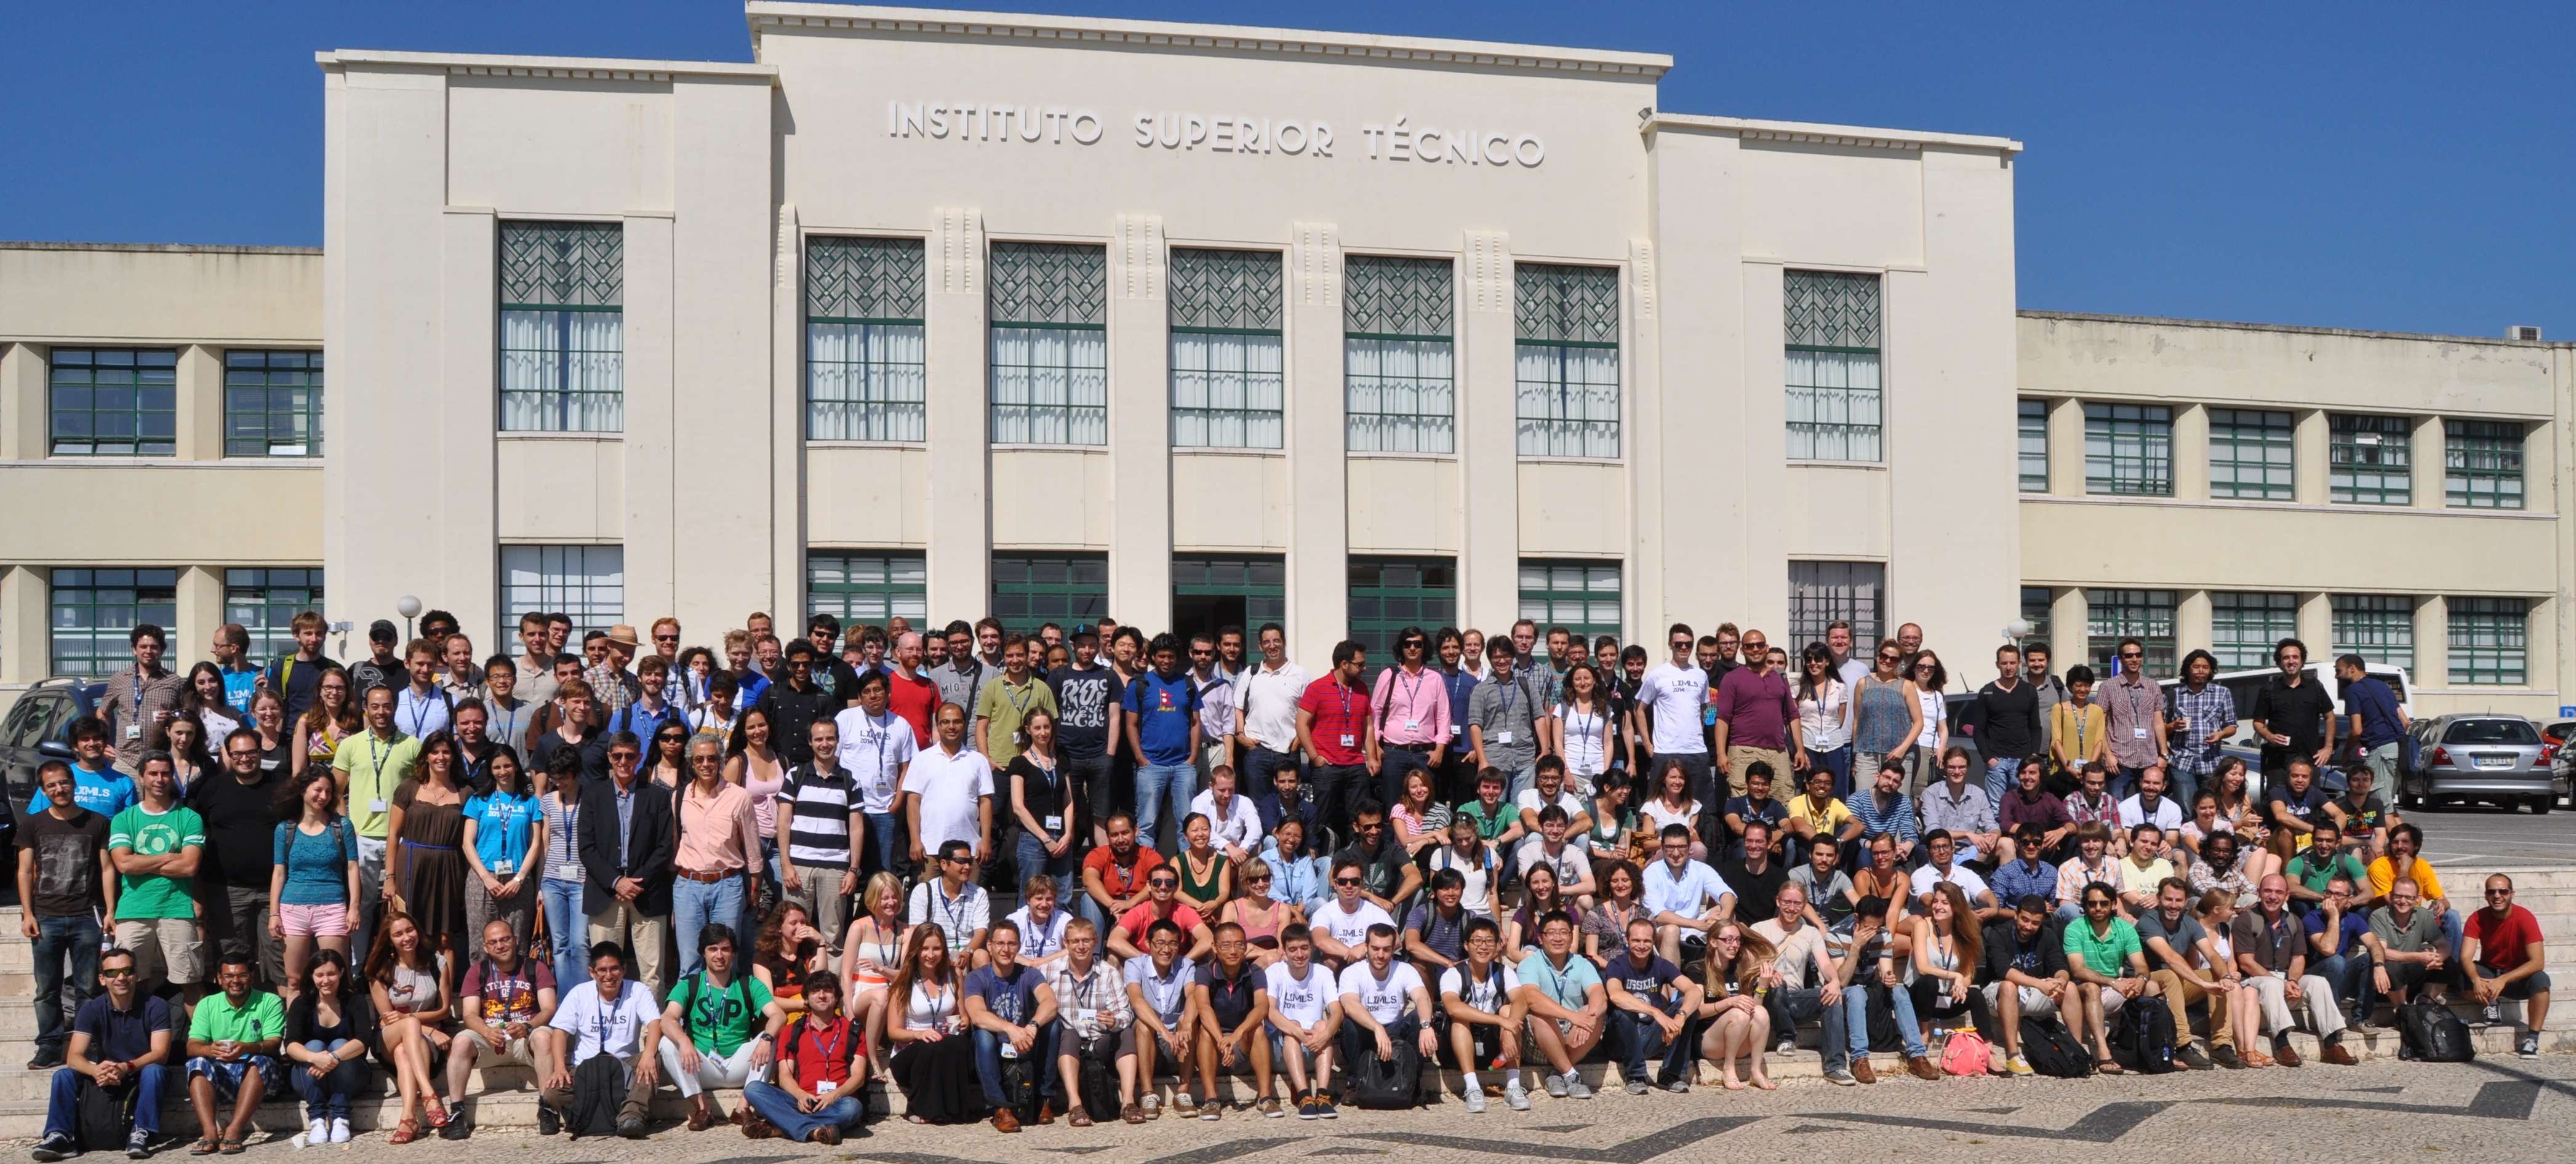 group-photo_lxmls2014